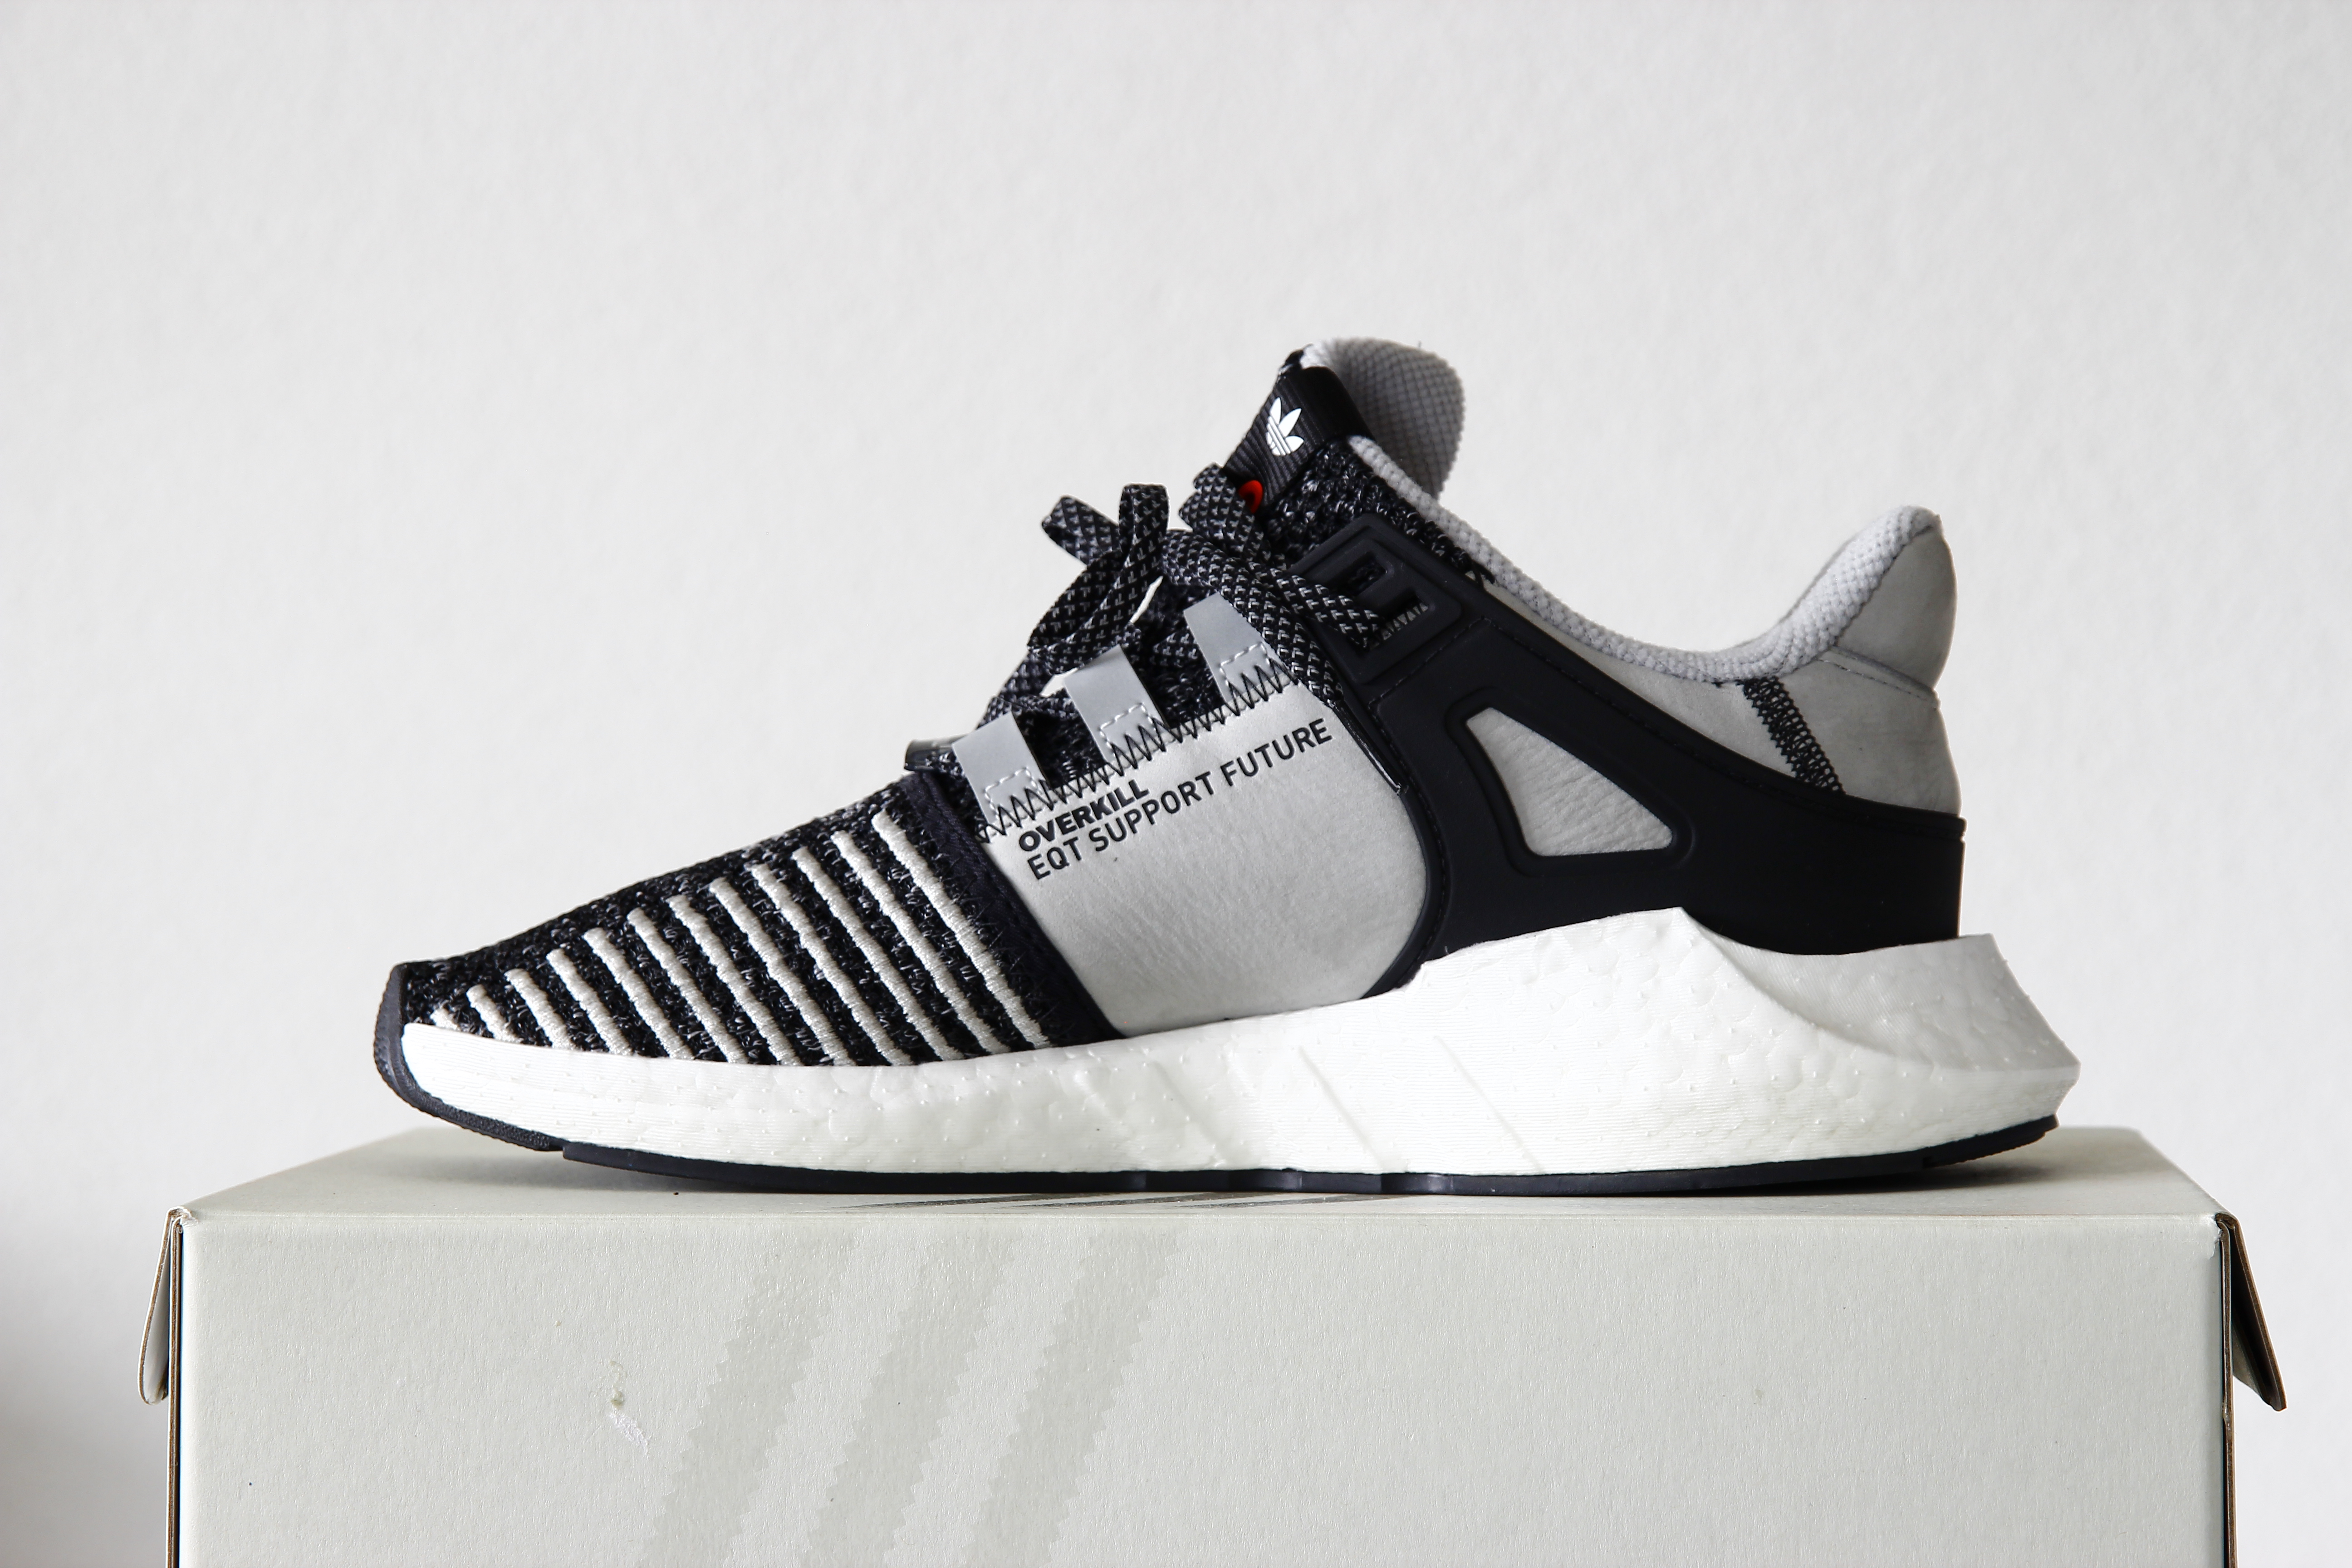 online store 5948a 2a7b2 Overkill x Adidas EQT Support Future -